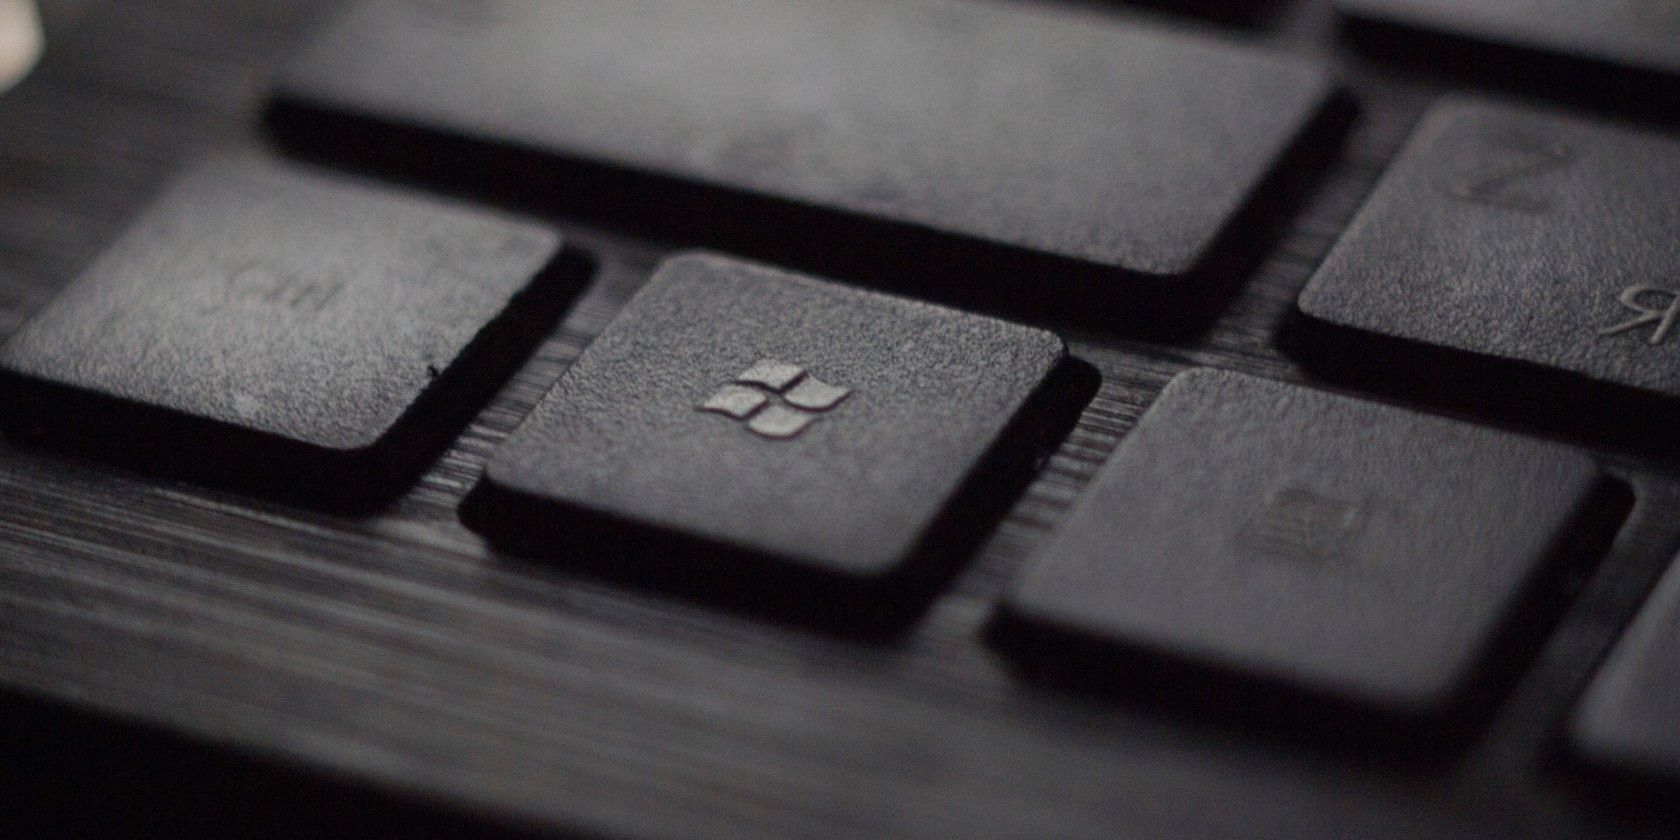 Microsoft Delivers Critical Updates in Final Patch Tuesday of 2020